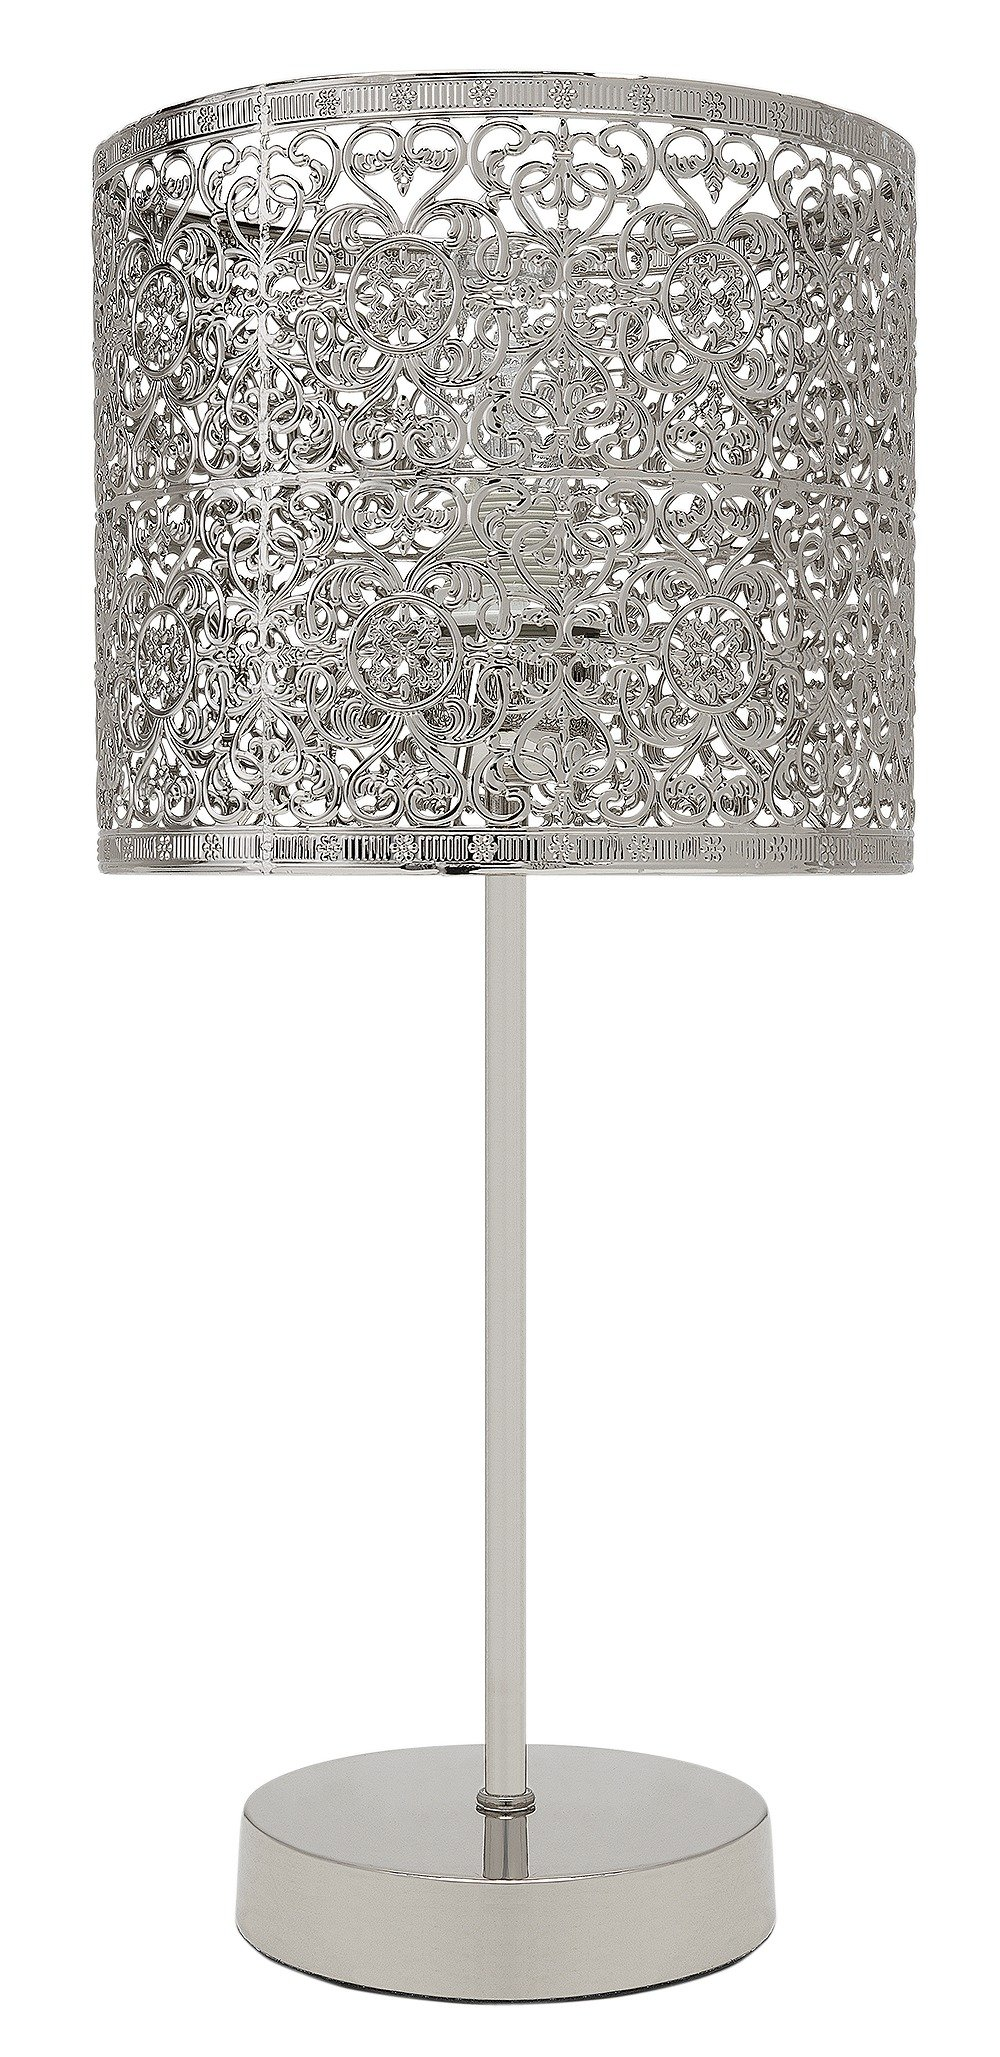 Image of Collection - Firenze Fretwork - Table Lamp - Nickel